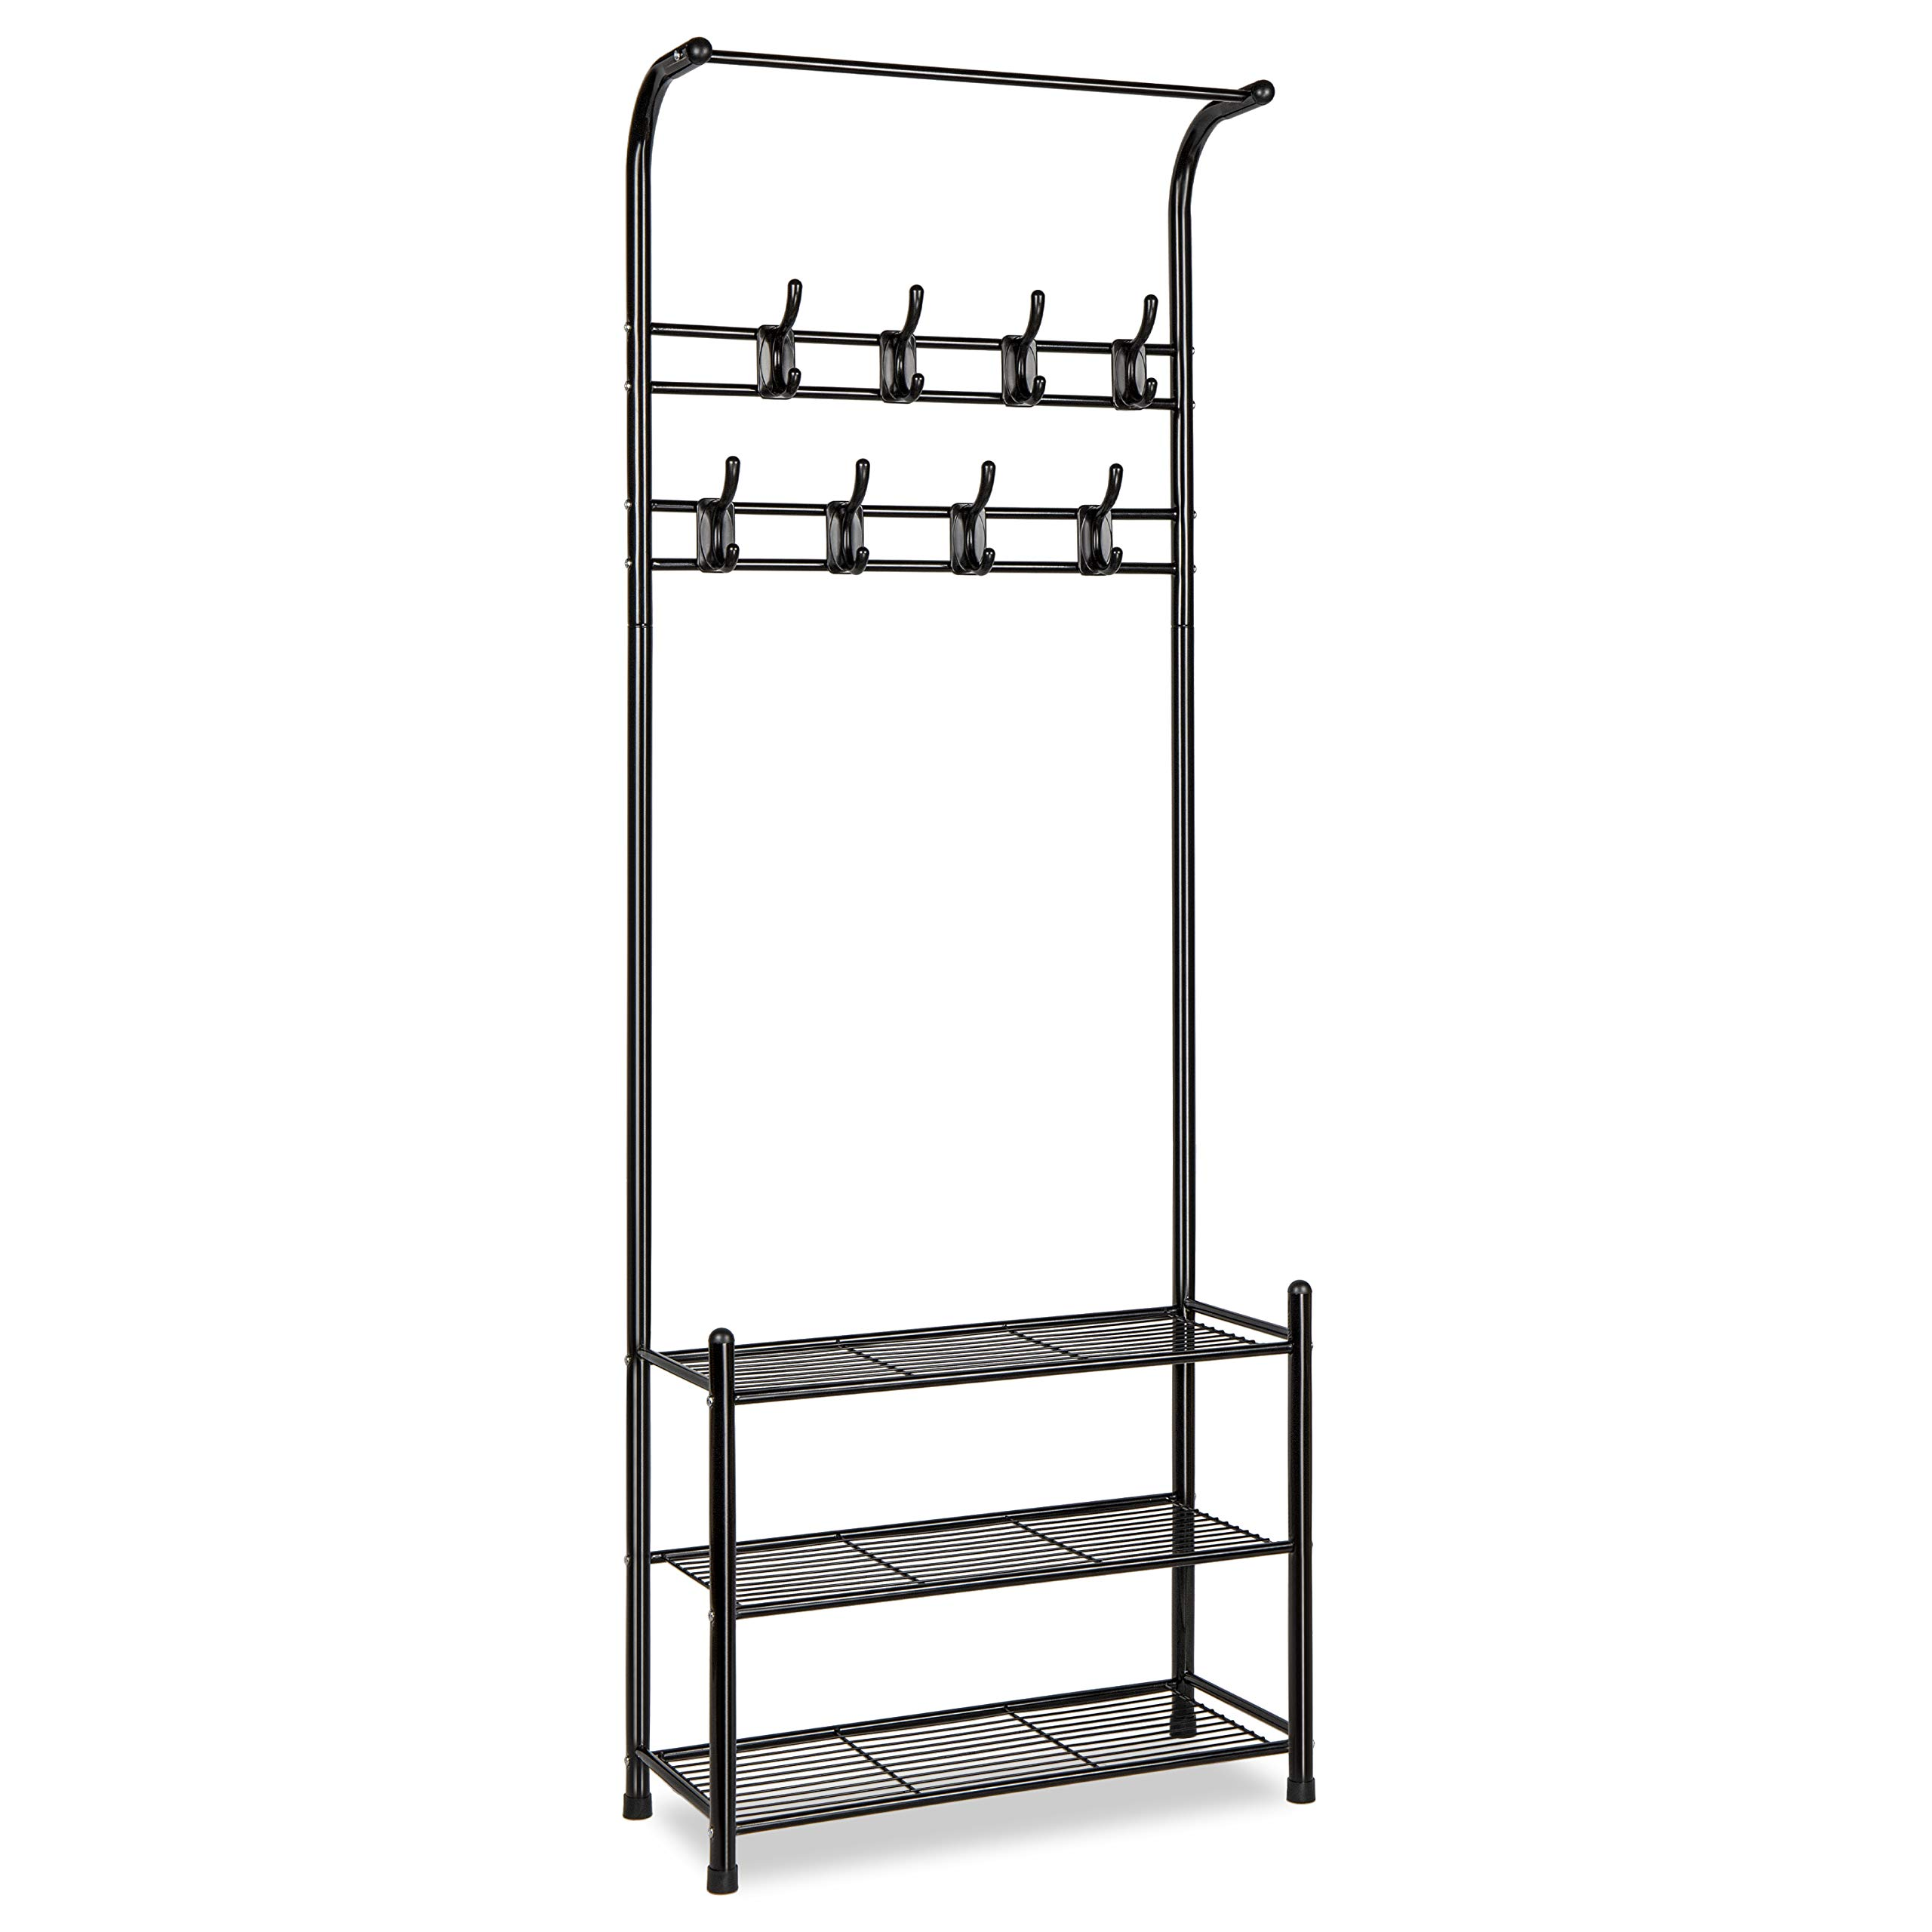 alvorog Entryway Coat Rack Shoe Bench, 3-in-1 Hall Tree, 3-Tier Storage Shelves with 16 Hooks Multifunctional Hallway Organizer, Easy Assembly (Black) by alvorog